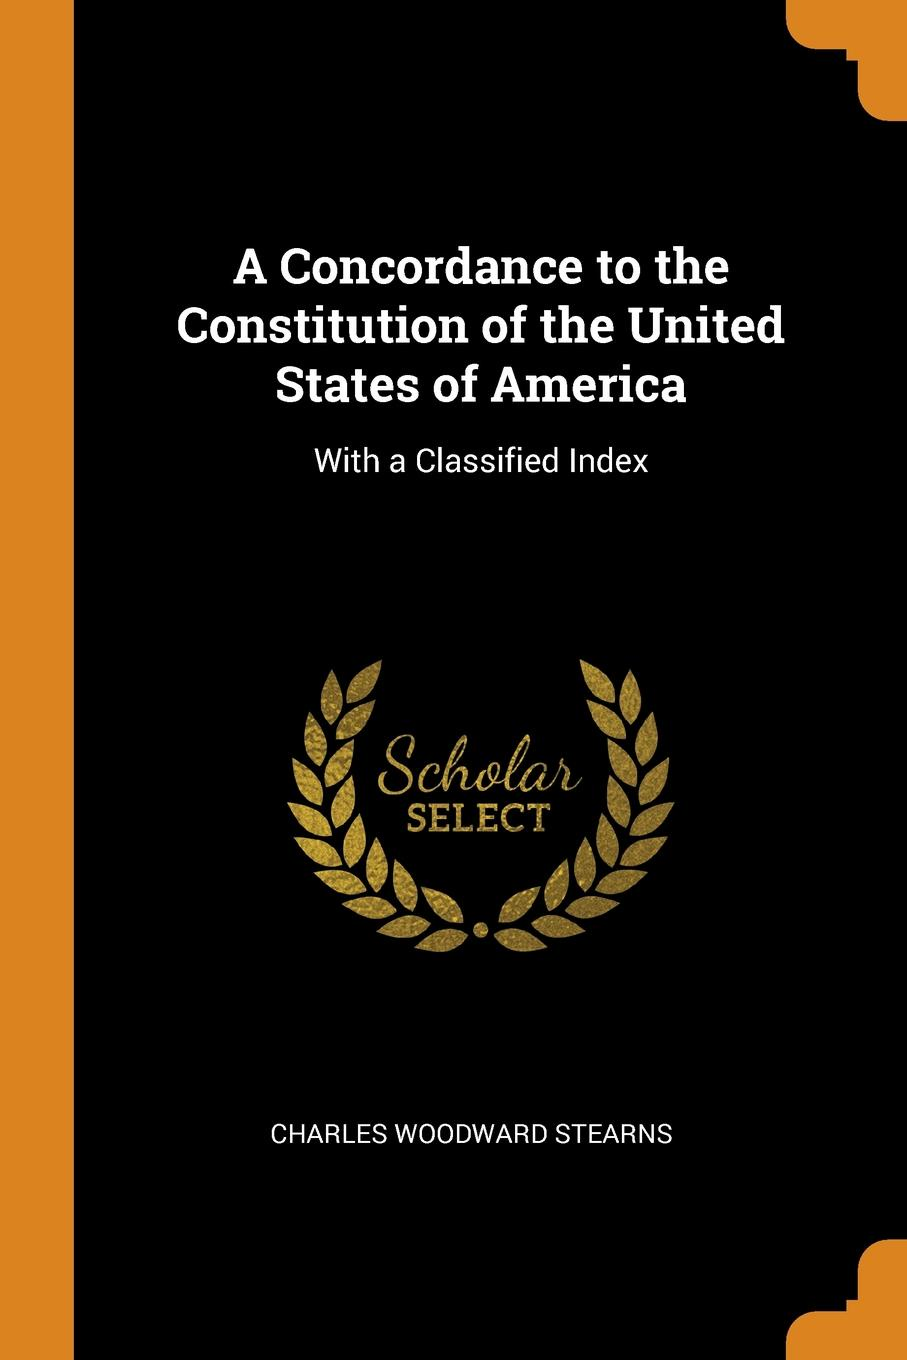 A Concordance to the Constitution of the United States of America. With a Classified Index